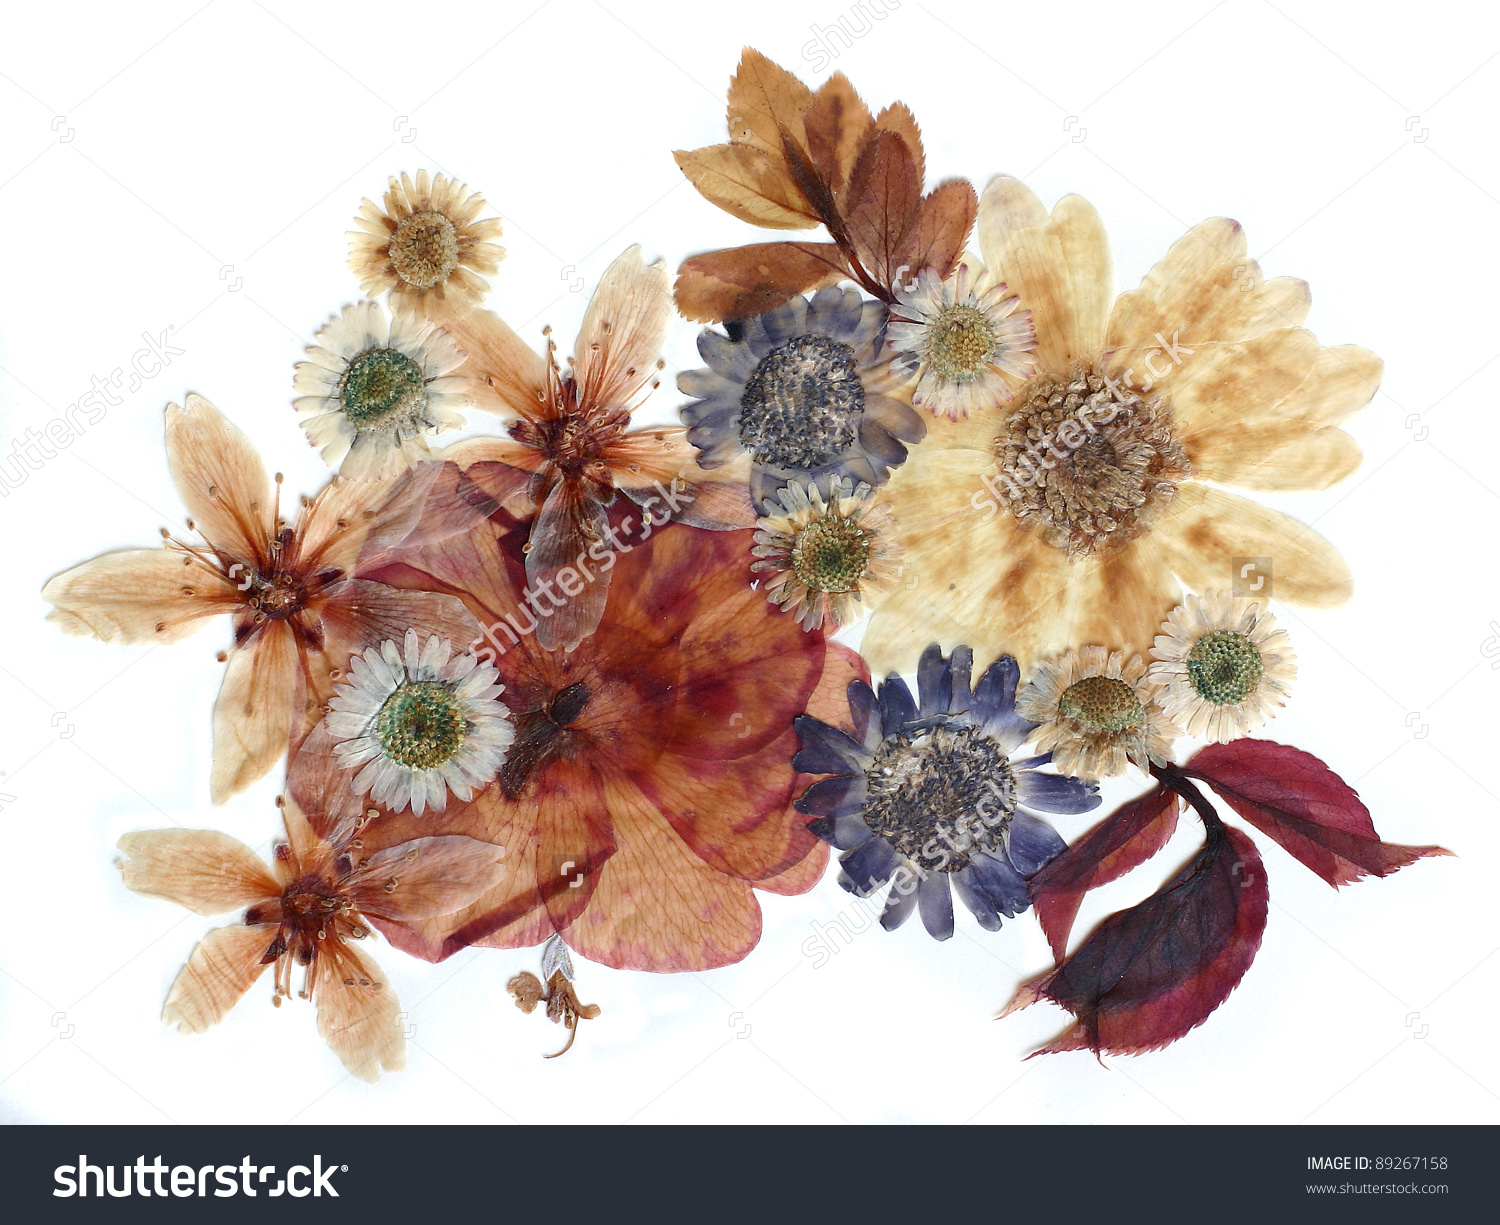 Dried flower clipart.